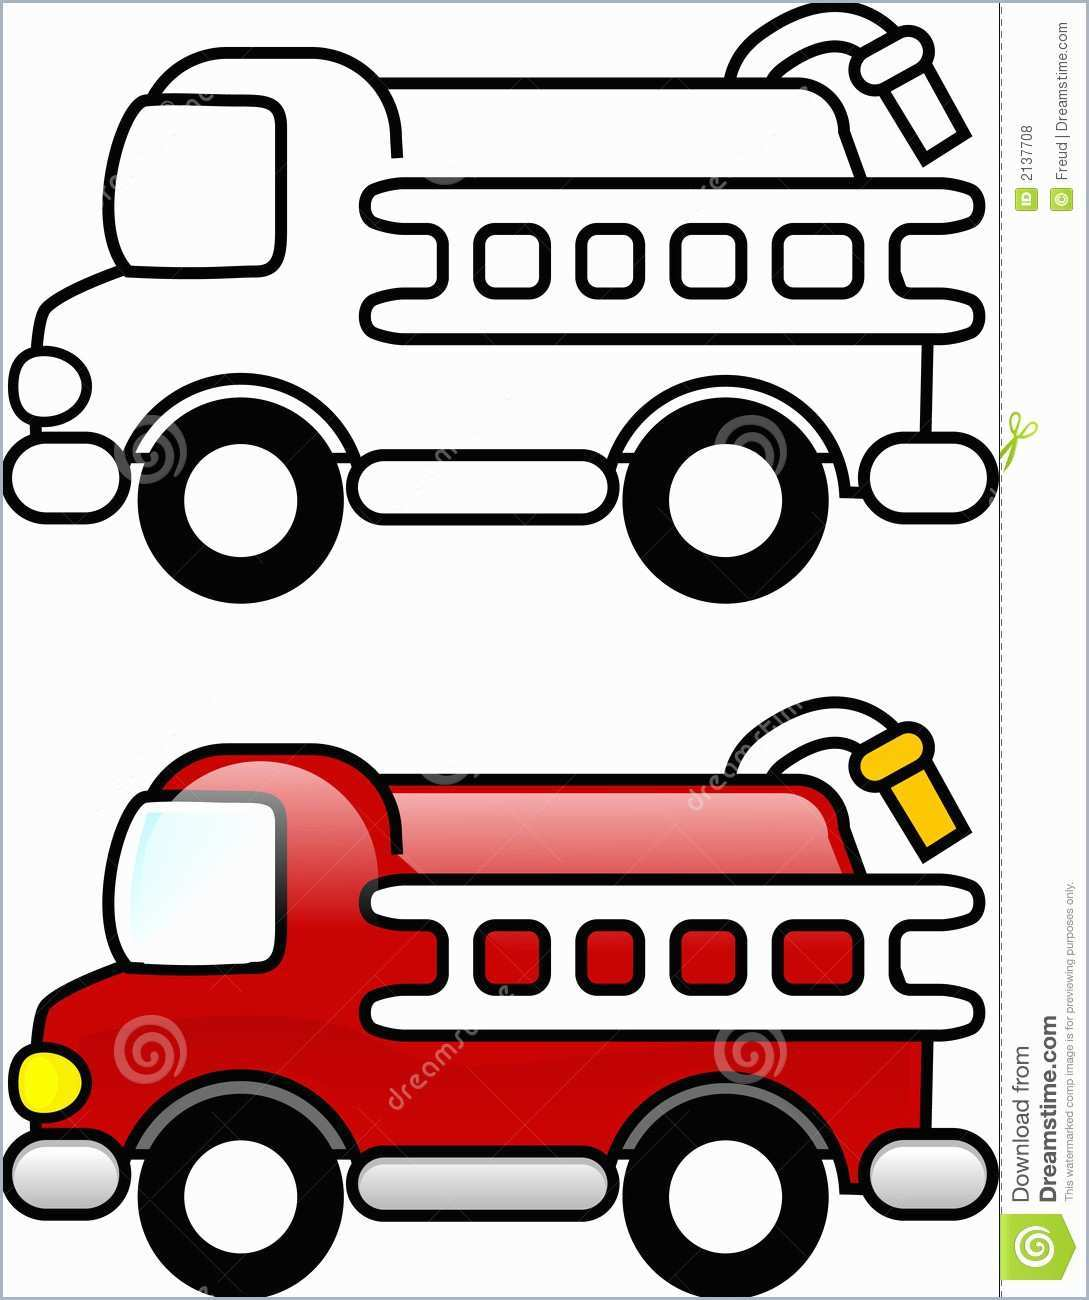 Easy Fire Truck Drawing